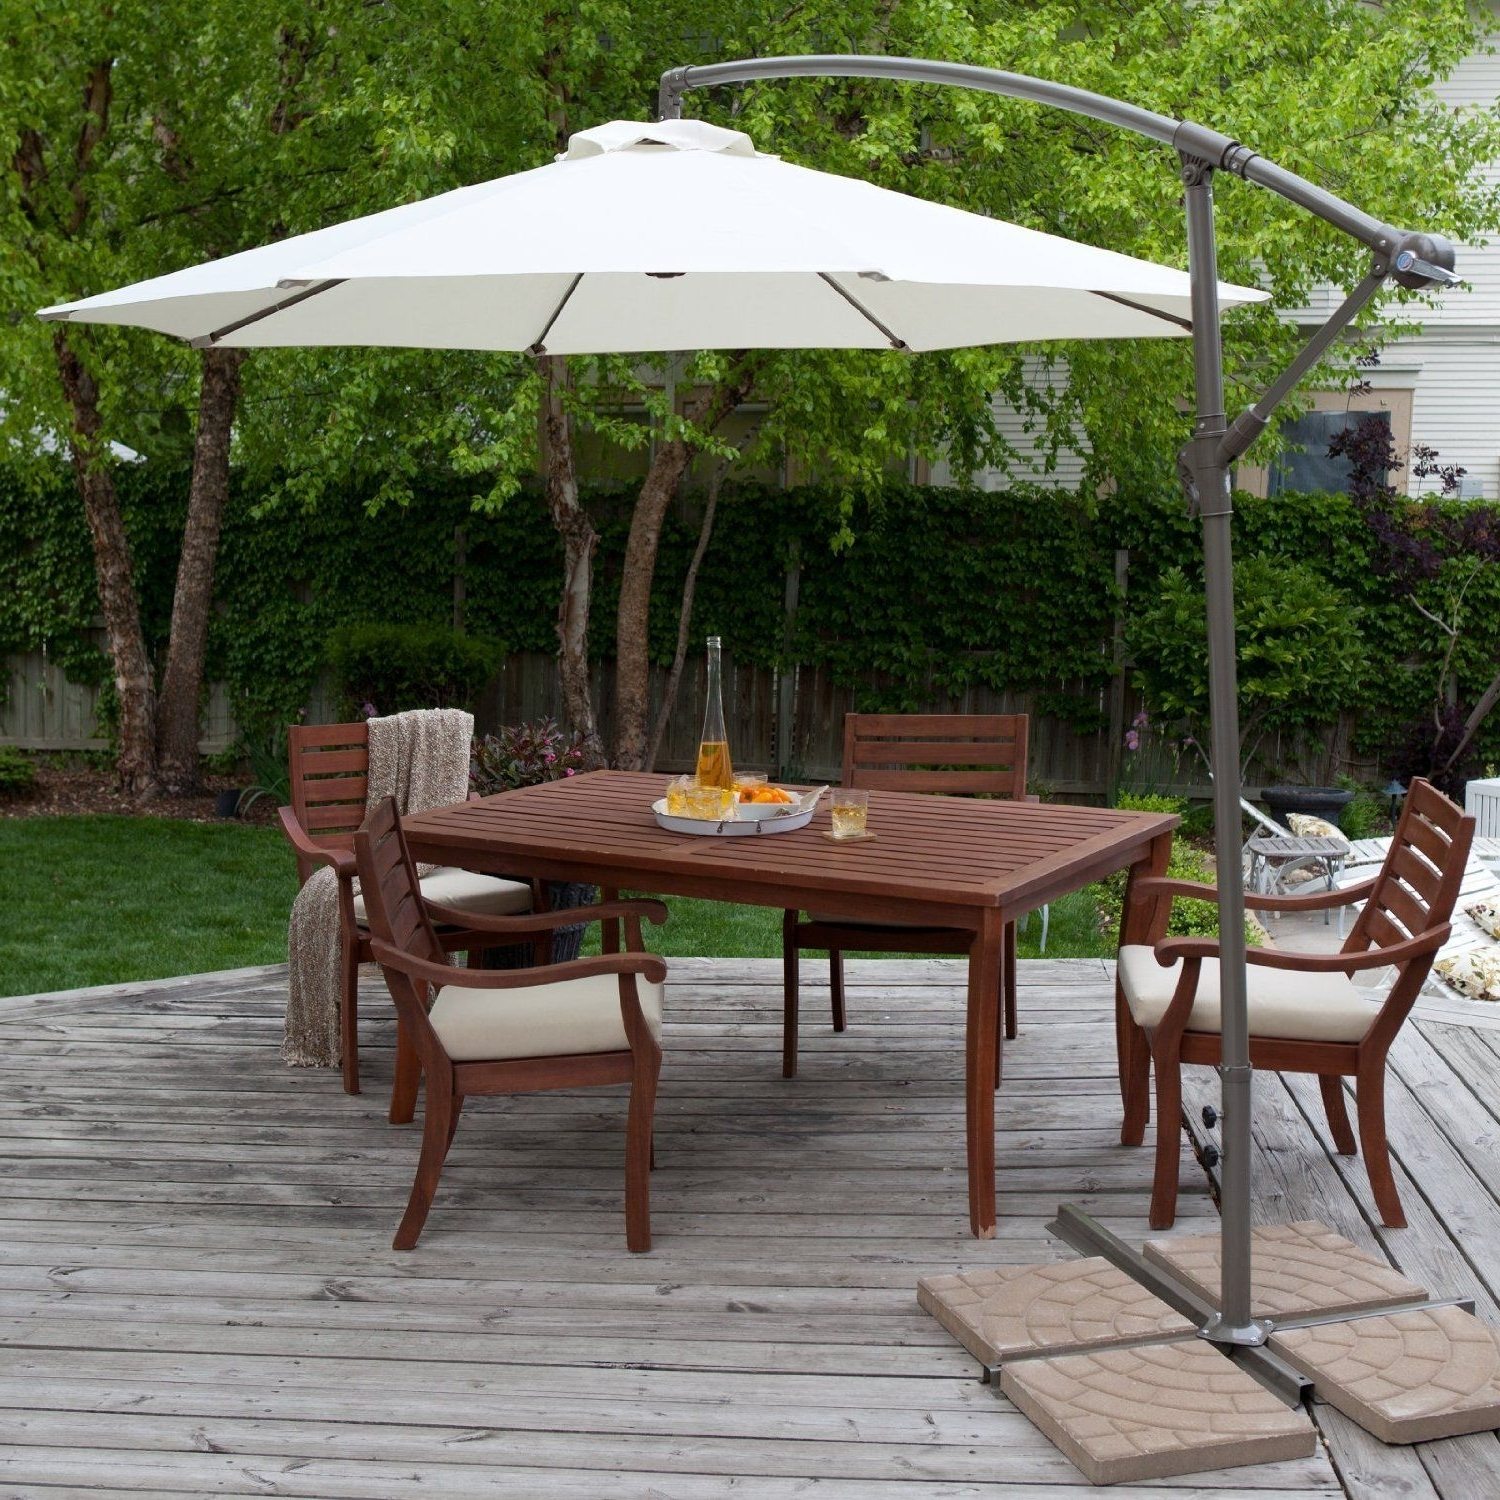 Favorite Patio Umbrellas For Tables Pertaining To Large Patio Umbrellas: Large Patio Umbrellas Coral Coast ~ Home (View 5 of 20)